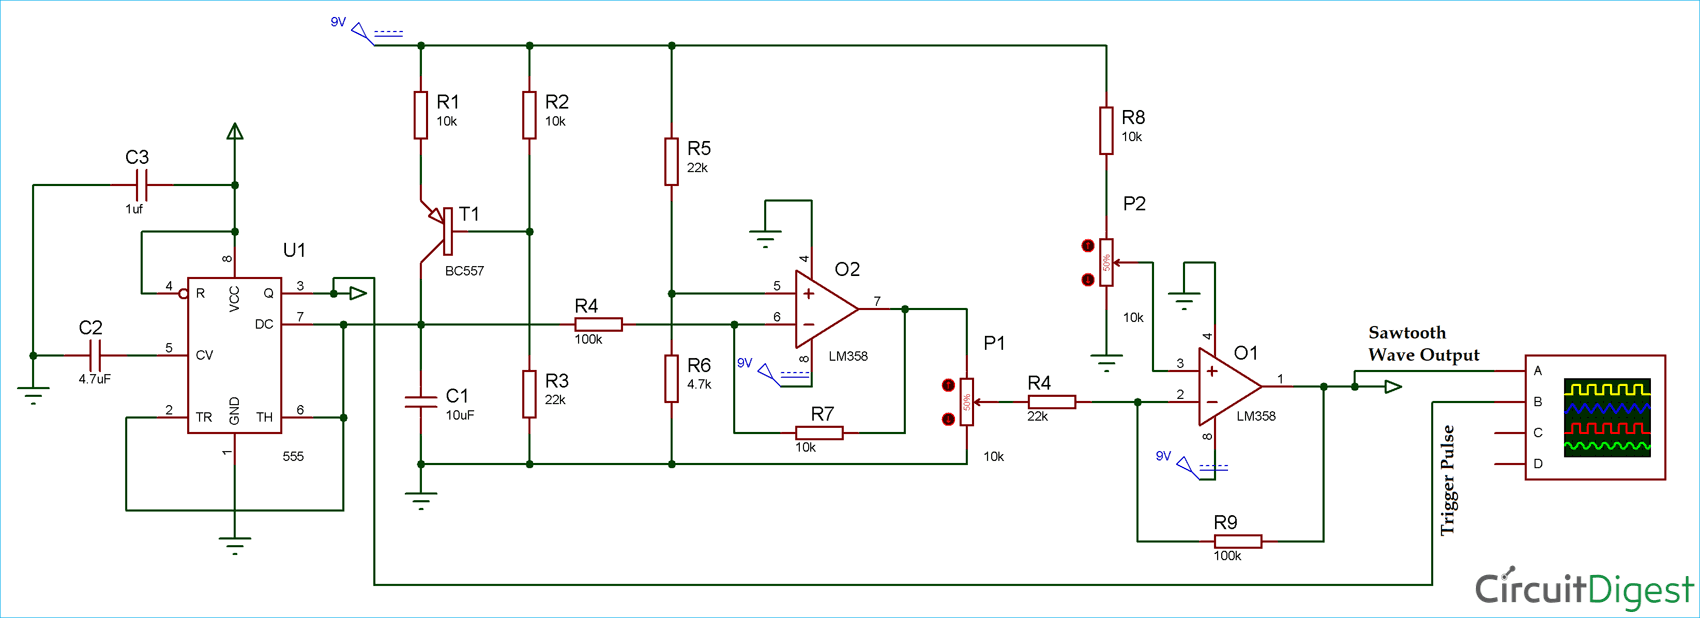 Sawtooth Waveform Generator Circuit Diagram Electronic Ldr Circuits And Diagramelectronics Projects